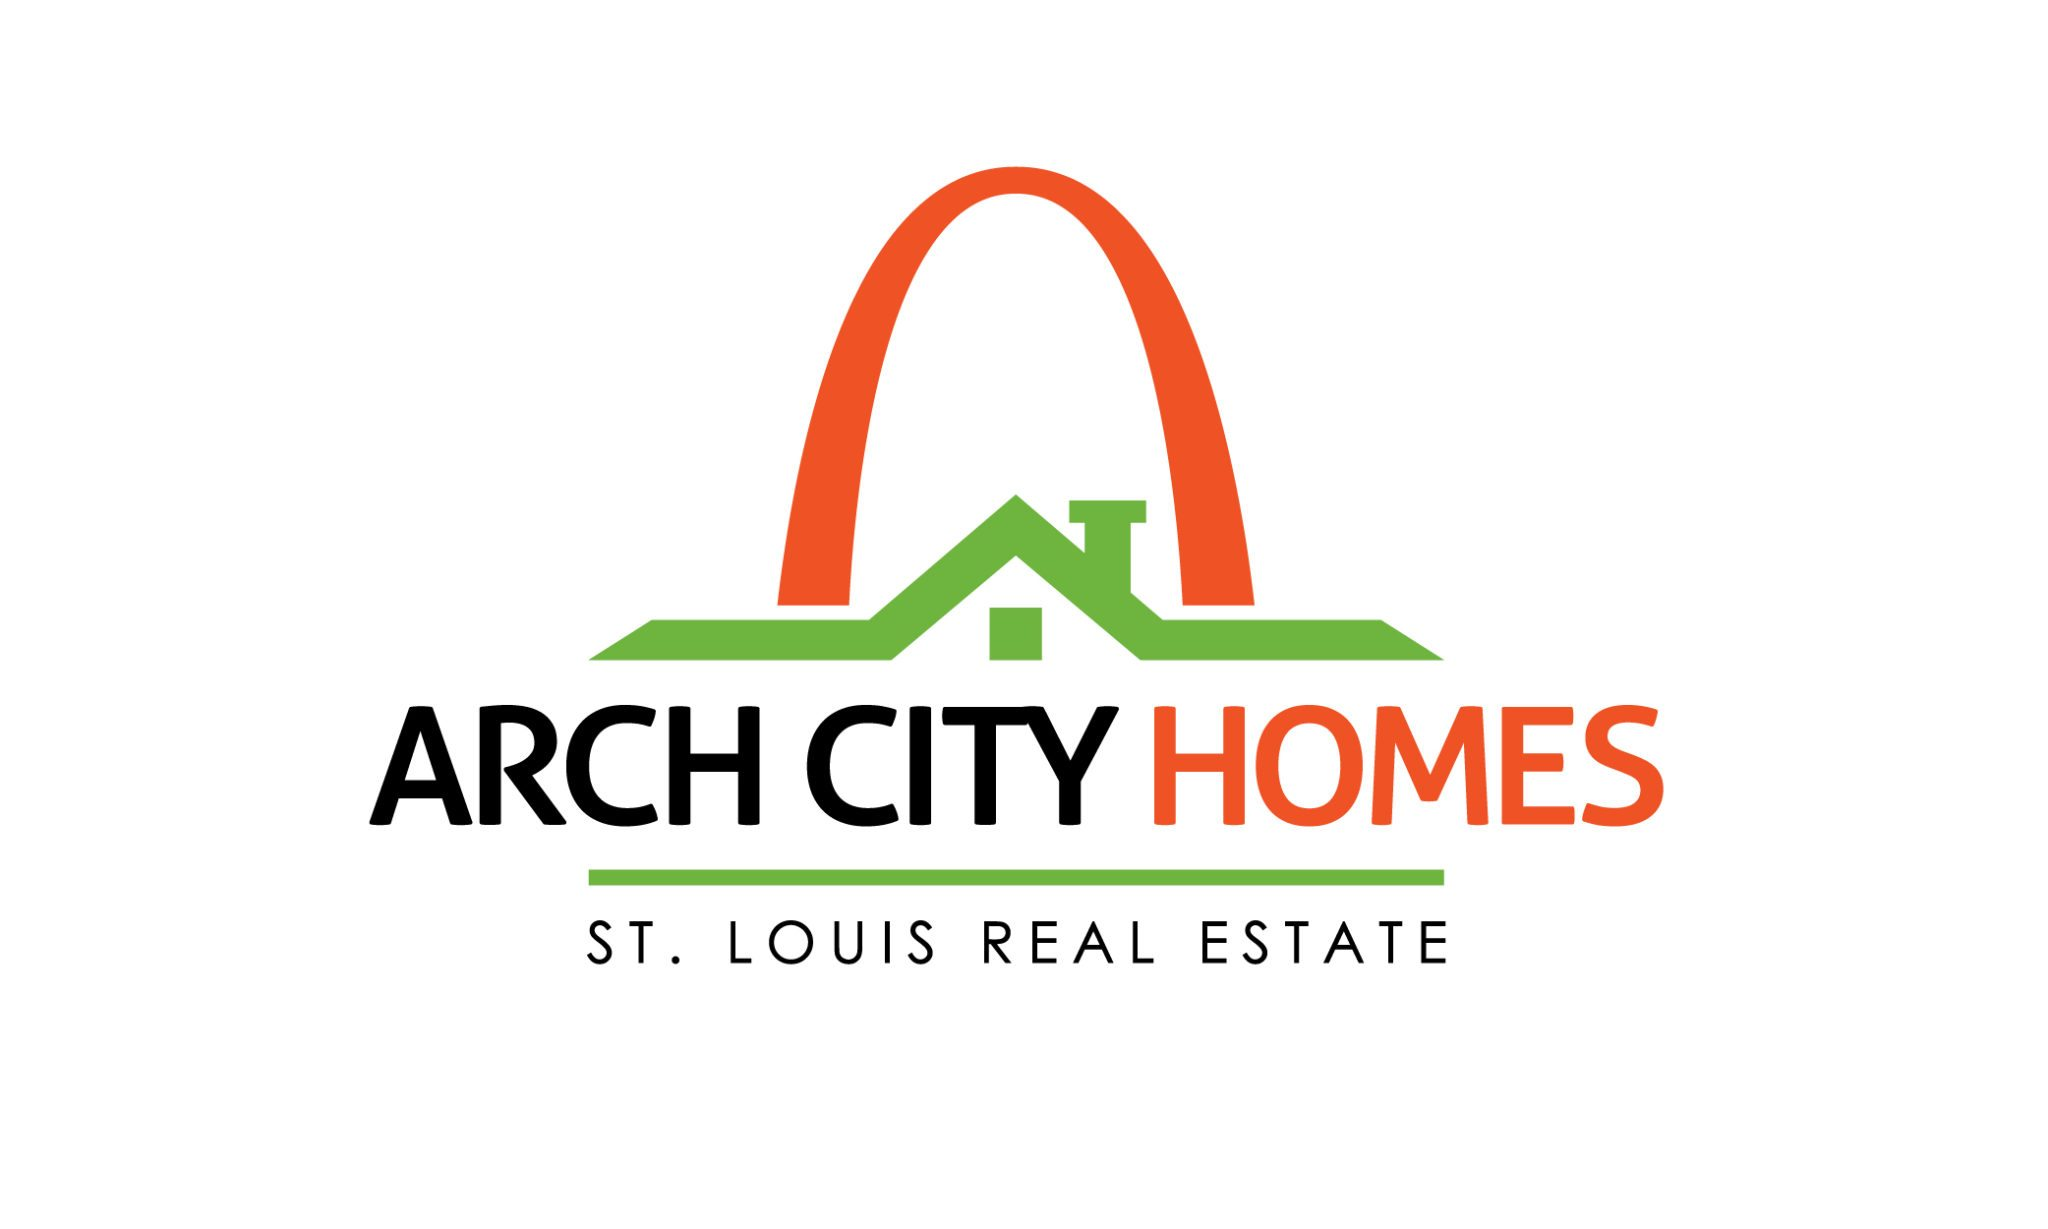 Arch City Homes